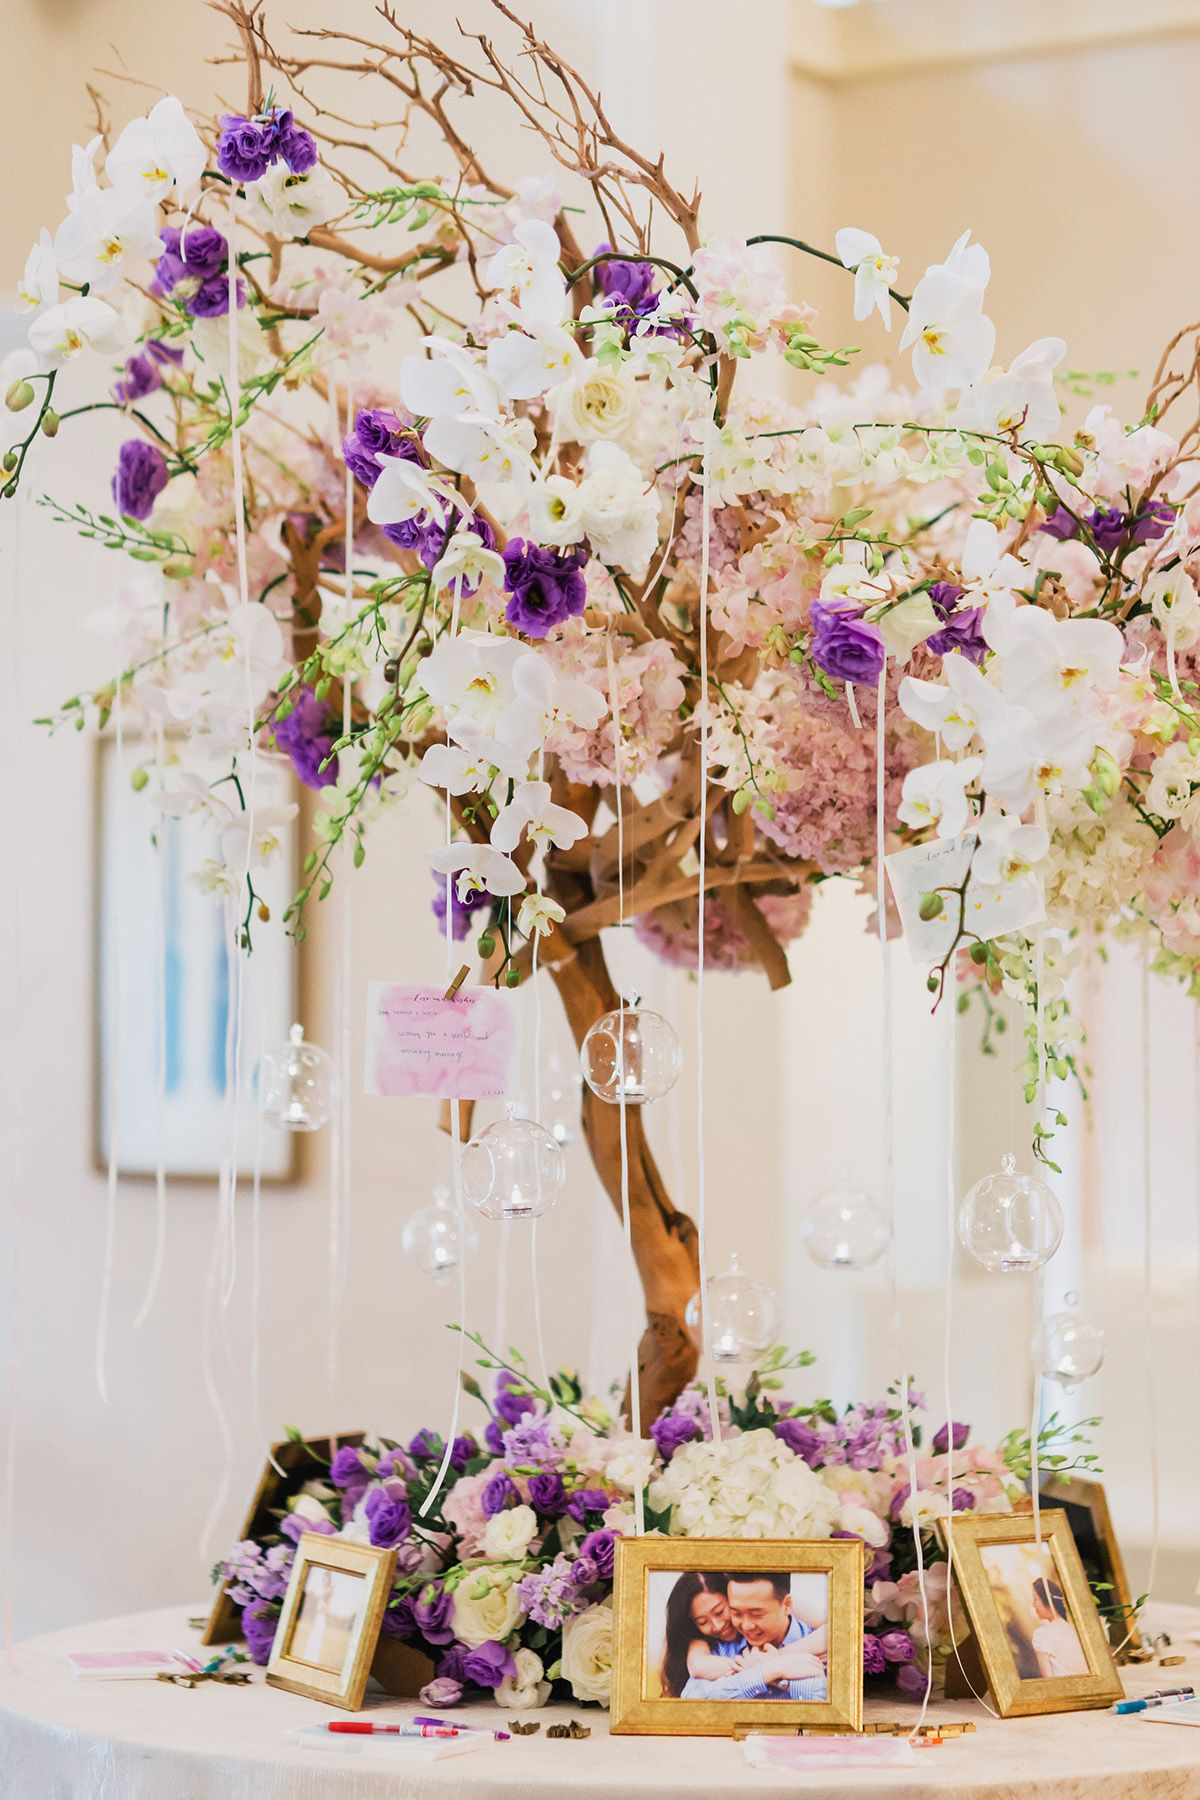 Ornate and lavish white and purple decor showcasing Terence and